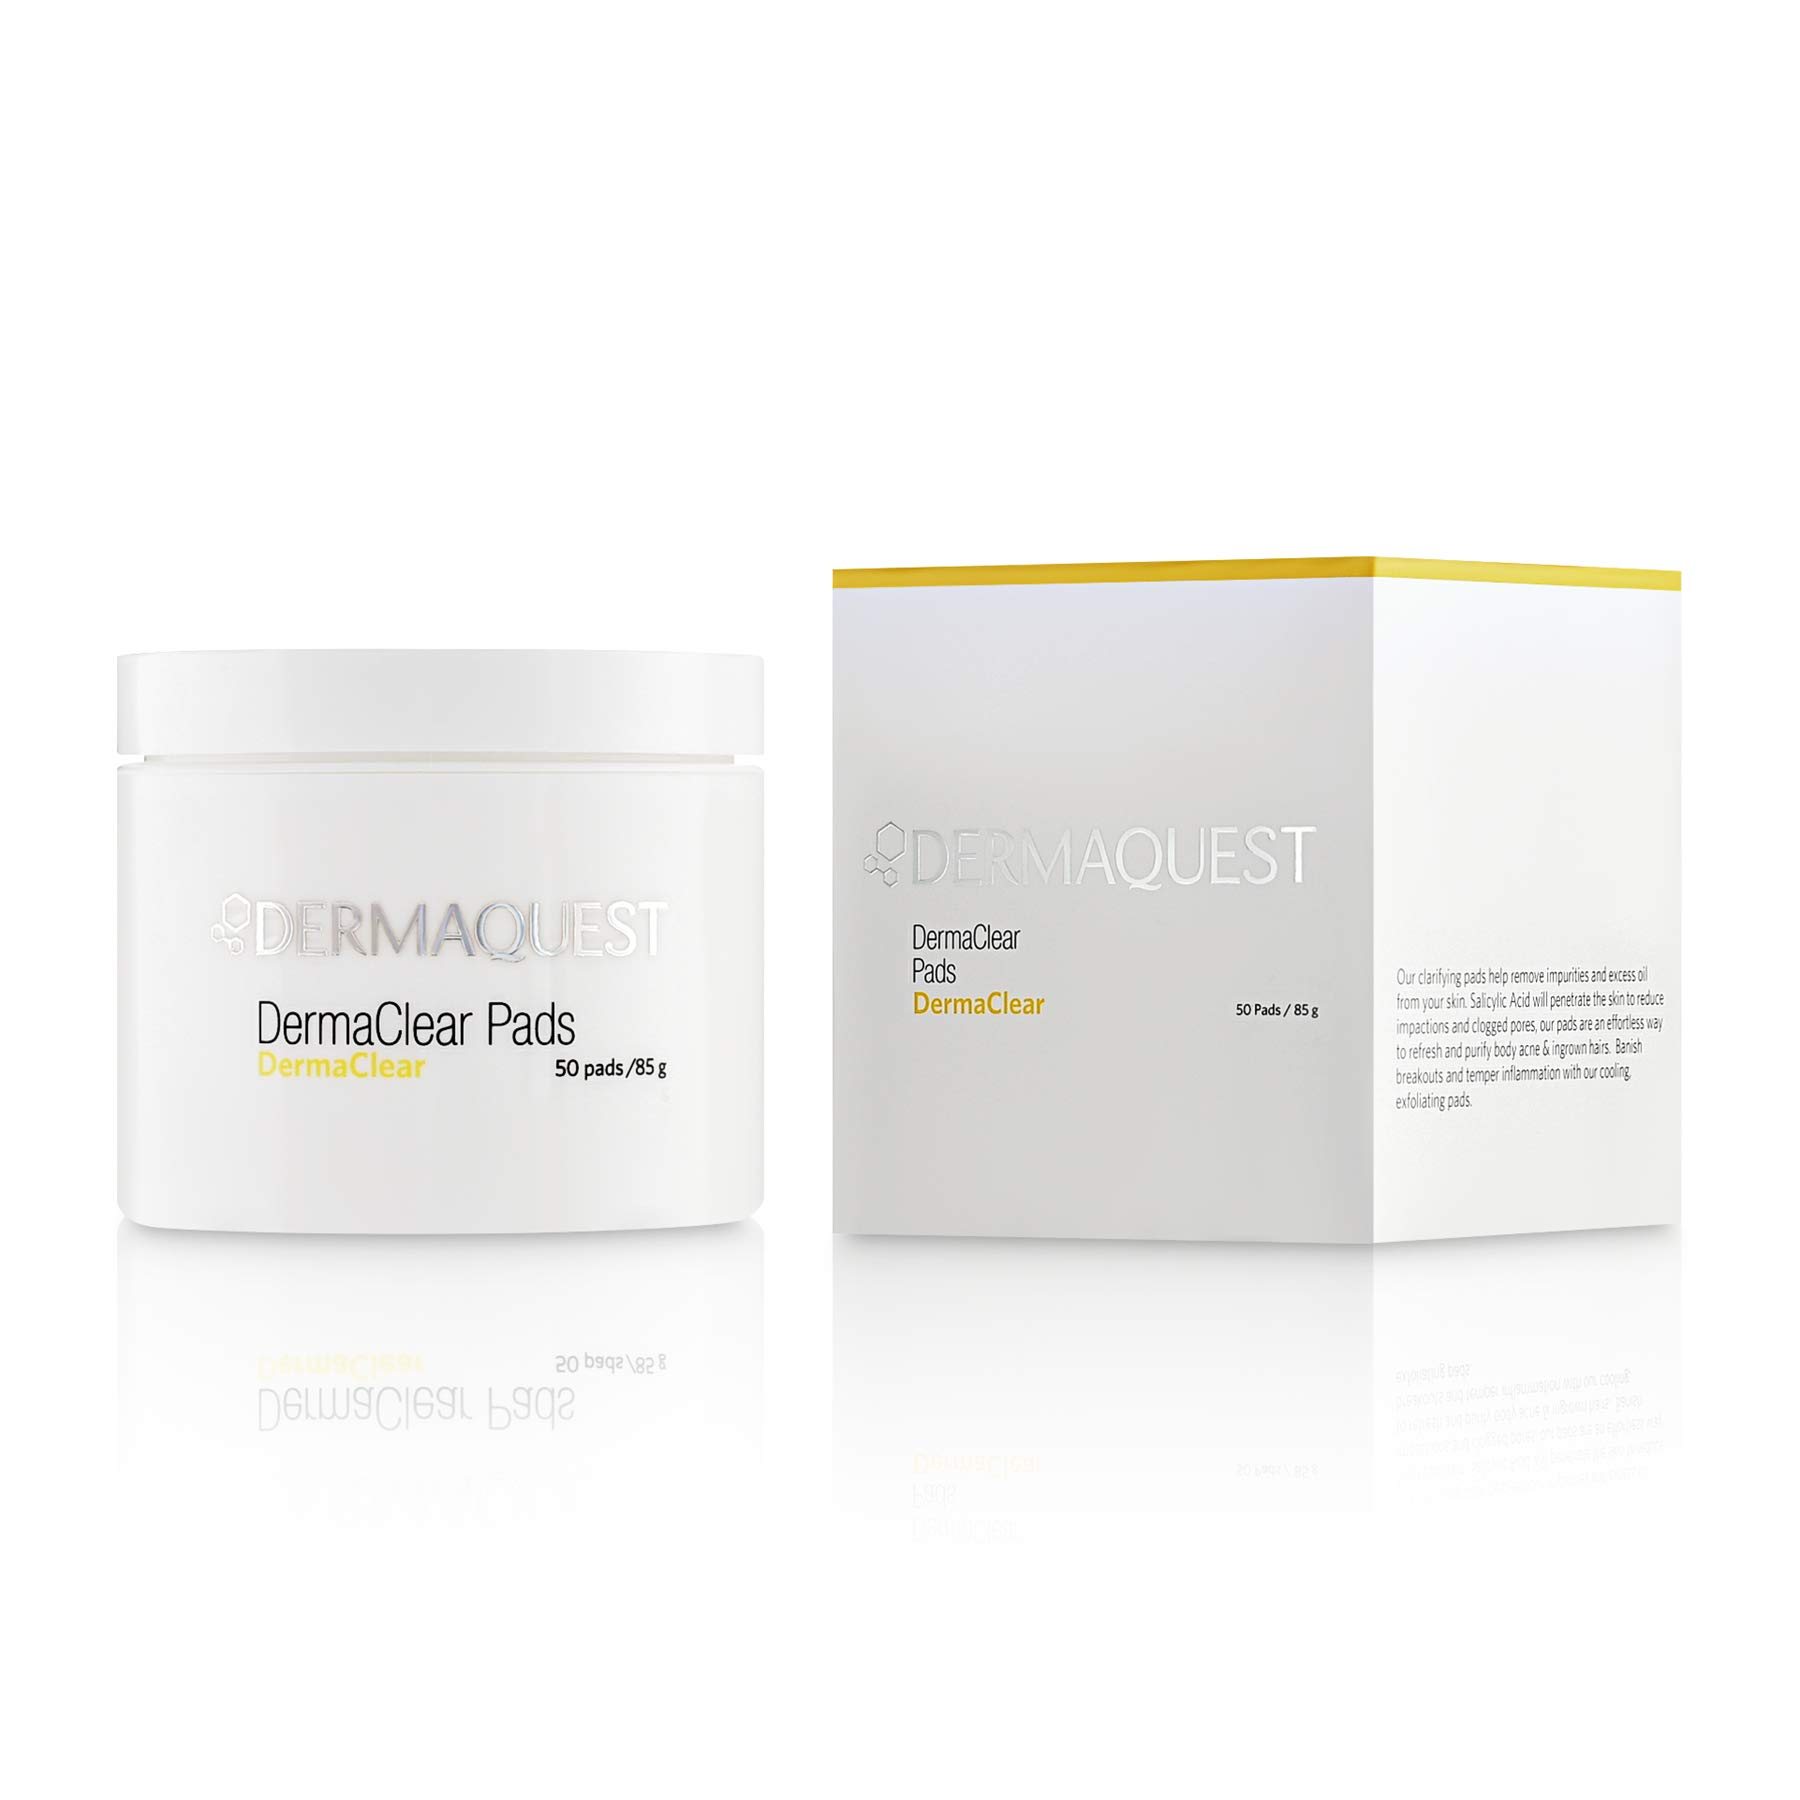 DermaQuest DermaClear Pads - Salicylic Acid Acne Treatment For Adults & Teens - Acne Wipes For Face, Neck, Chest, & Back (50 Pads)